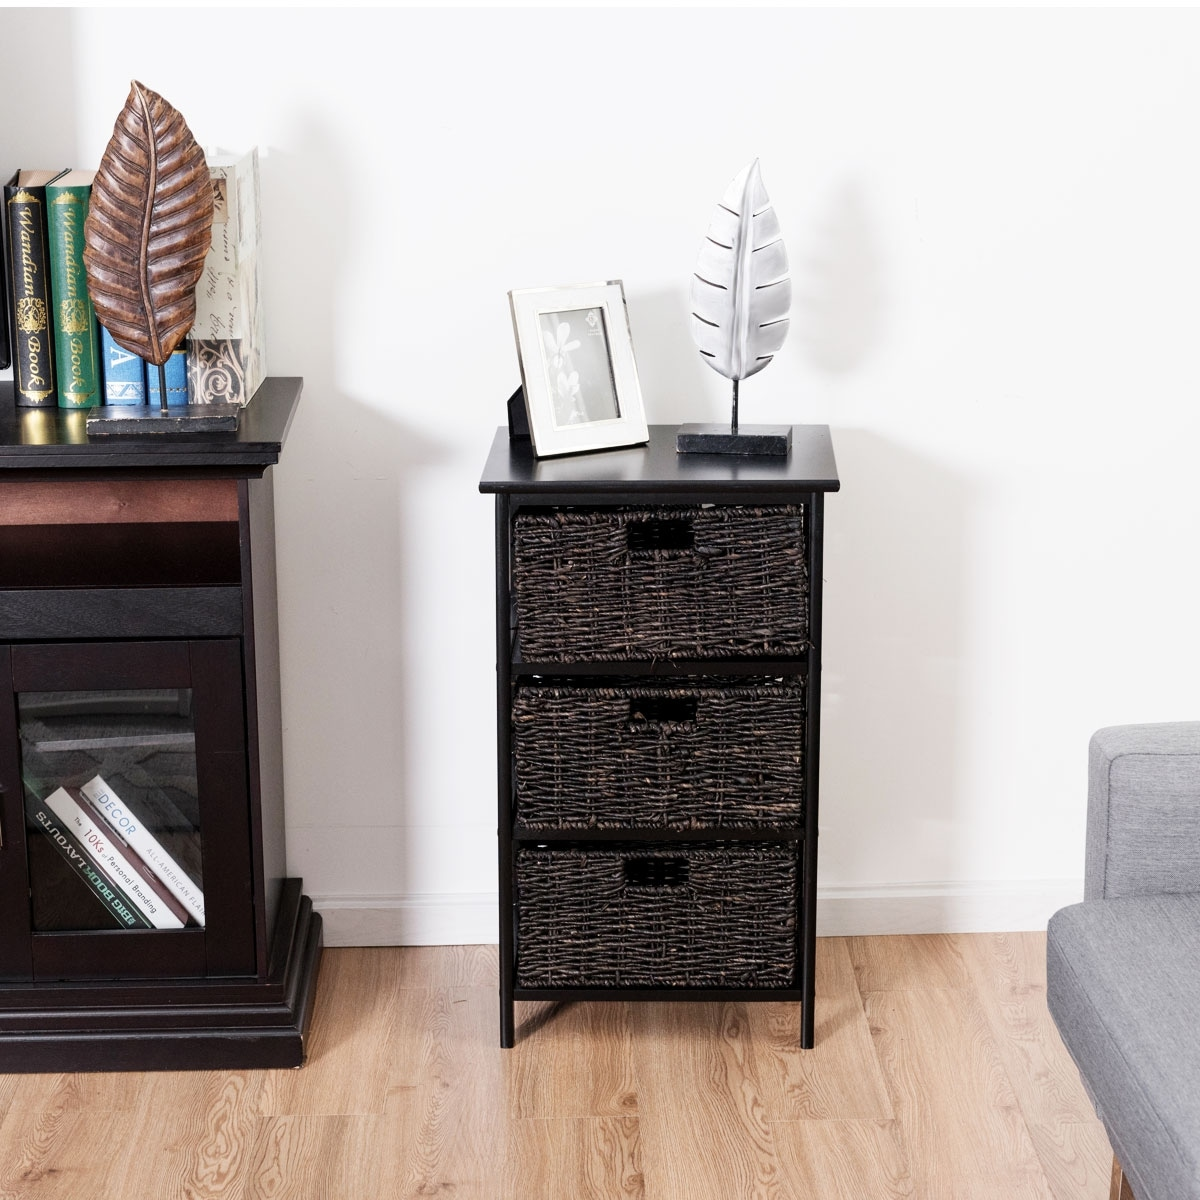 Costway wooden end accent storage table home office furniture decor w 3 storage baskets black